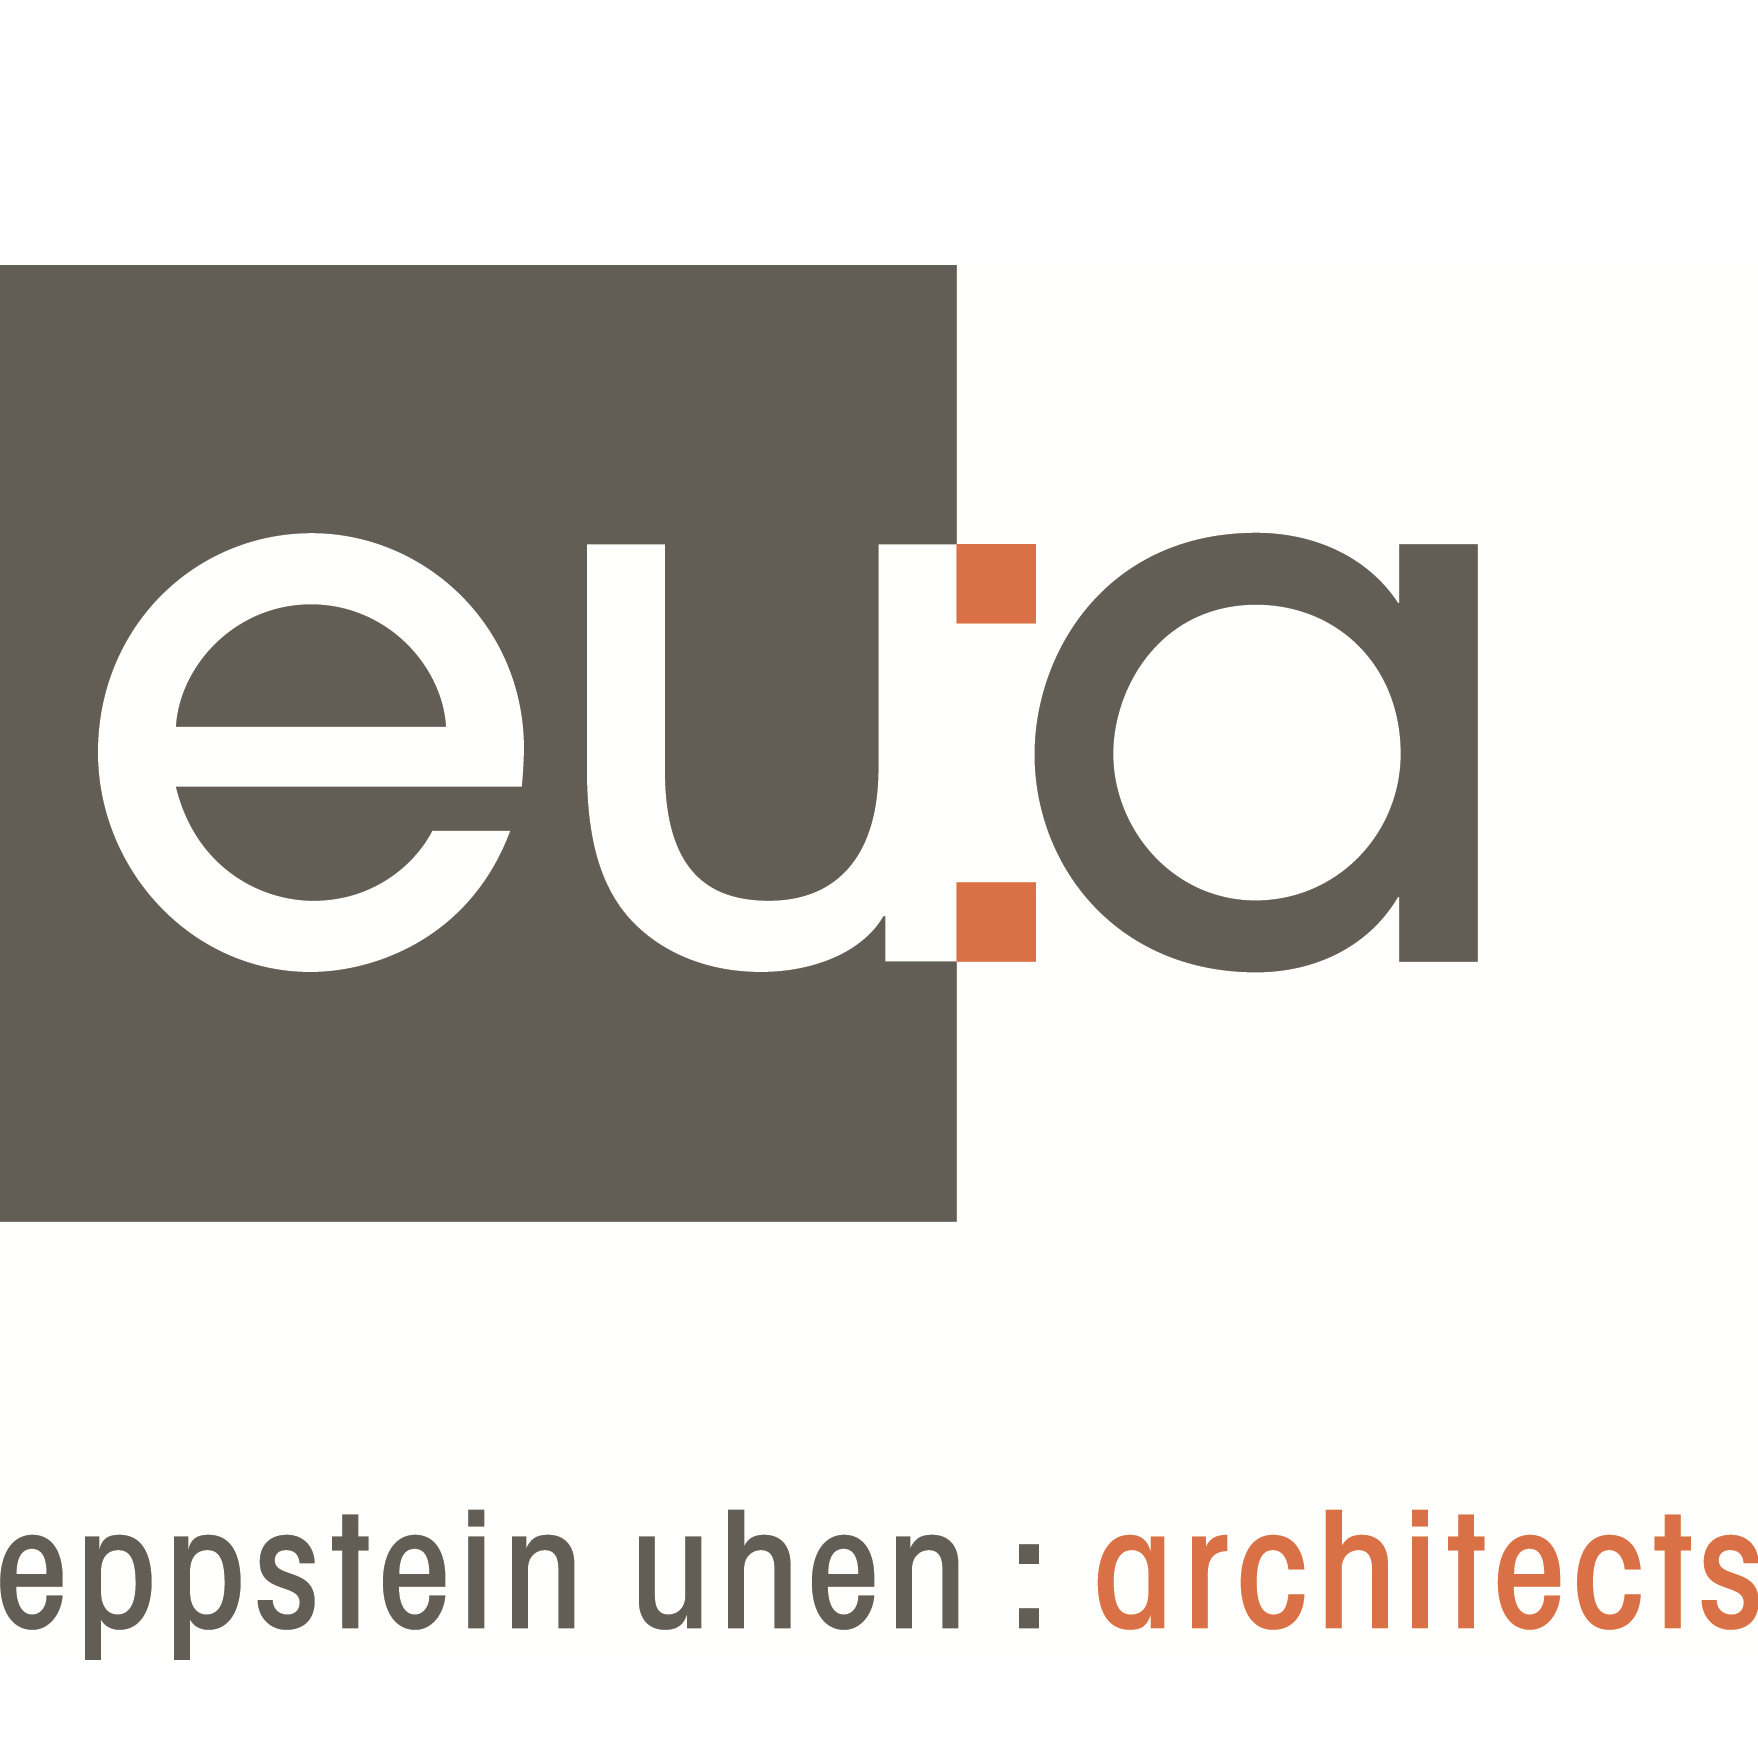 Eppstein Uhen Architects copy